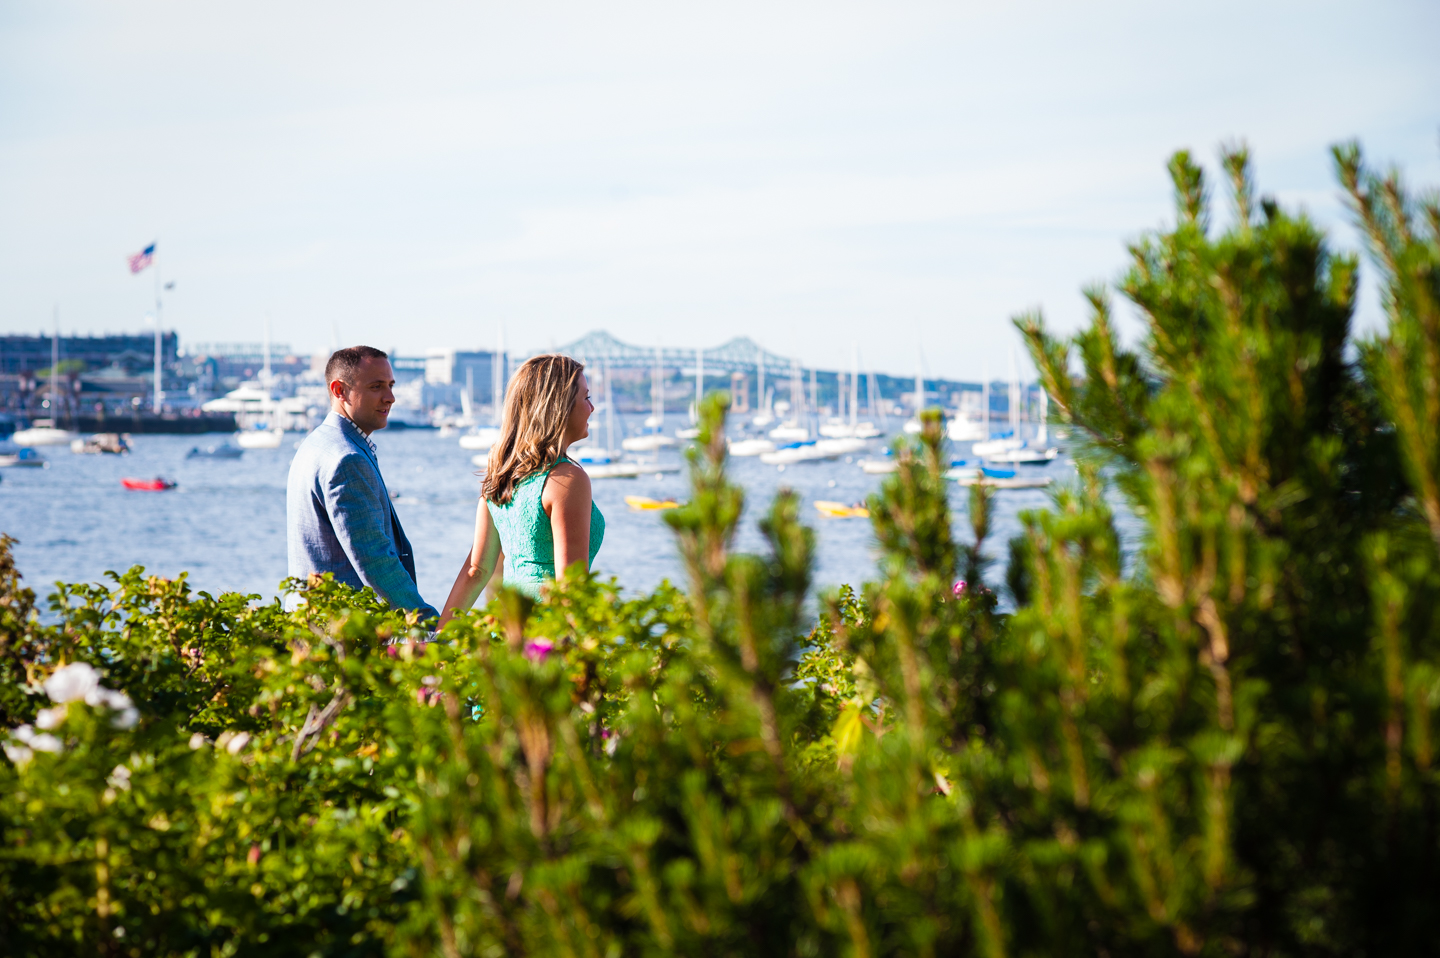 engaged  couples walks by the boston harbor waterfront during their sunset engagement session